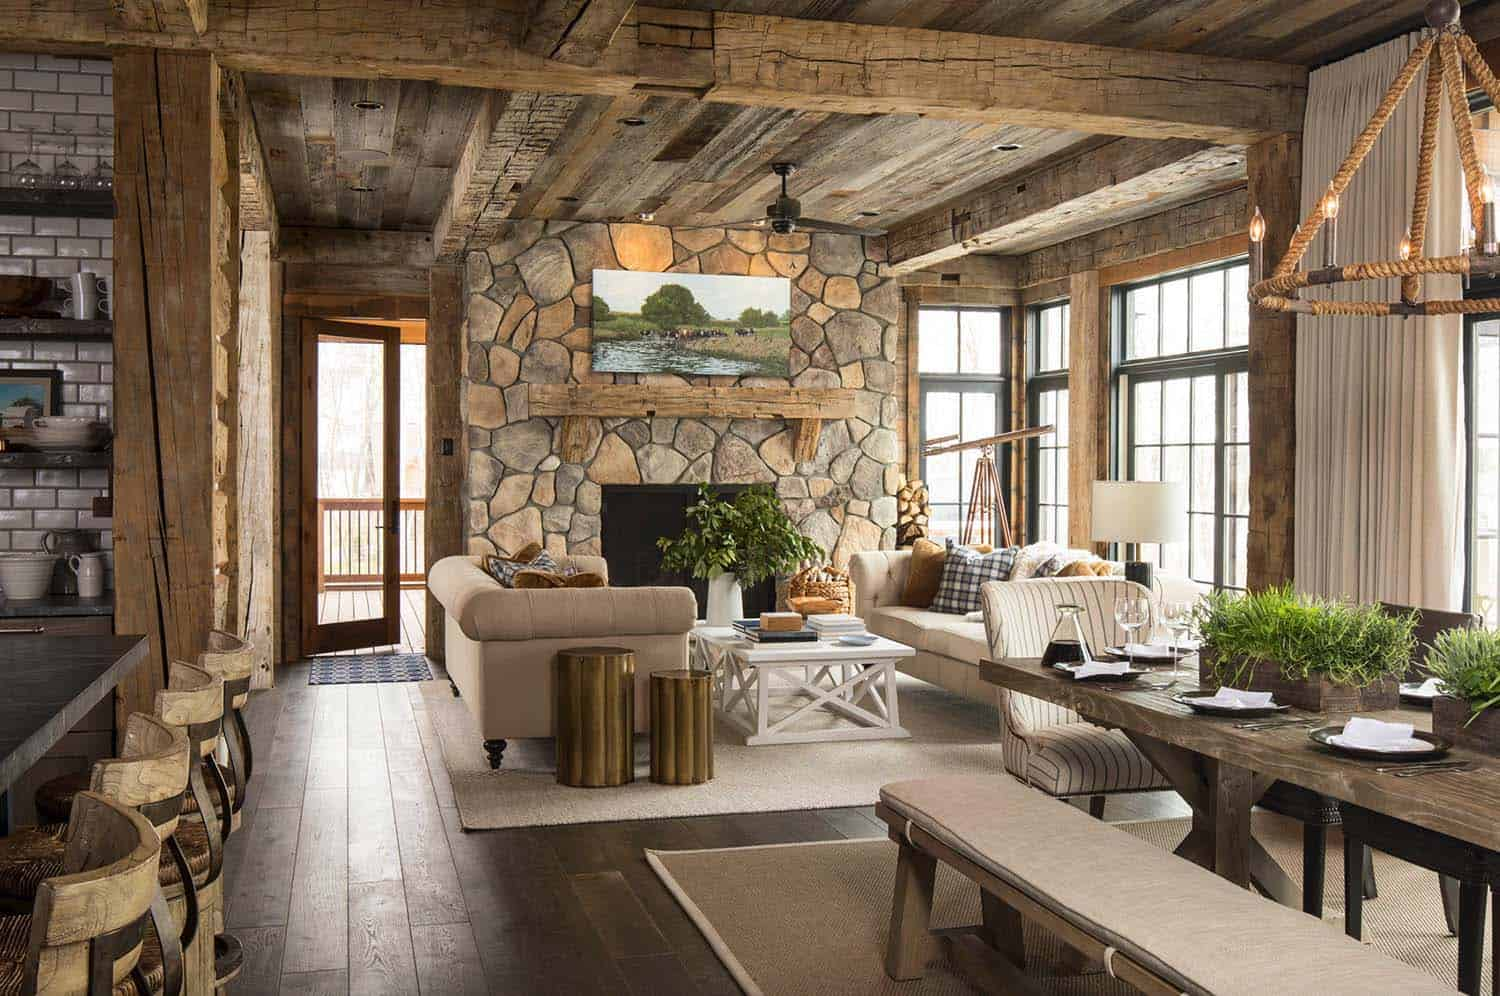 Rustic Lake House-Martha OHara Interiors-08-1 Kindesign